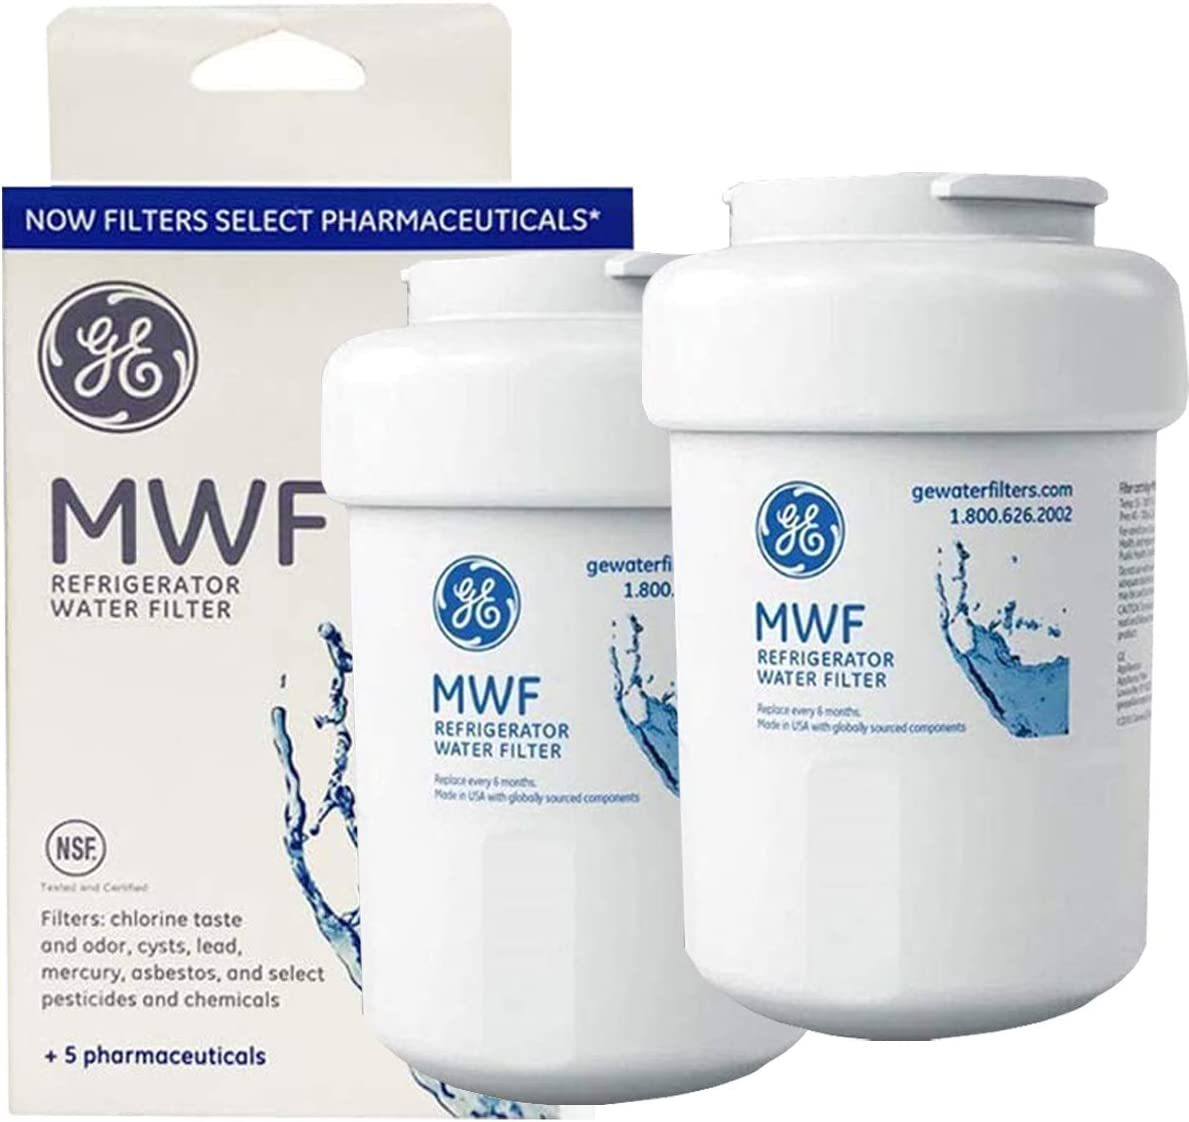 MWF MWFP Water Filter for GE Refrigerator Replacement OEM GE MWF Water Filter Compatible with GE SmartWater MWF, MWFP, MWFINT, MWFA,GWF, GWFA (2 Packs)